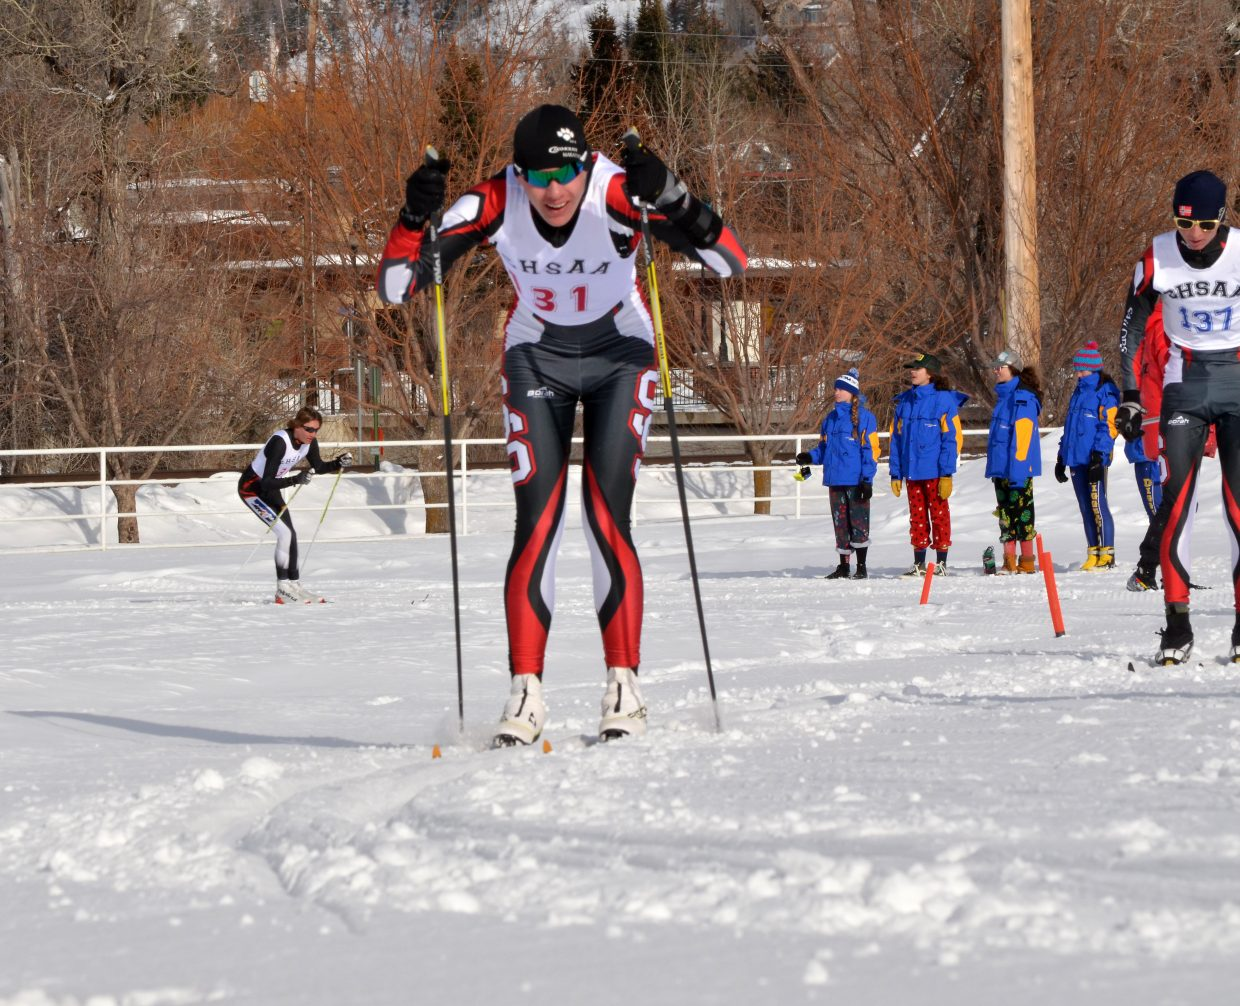 Steamboat Springs High School freshman Nordic skier Gabe Rabenal (131) led his team in the State Championship 5-kilometer classic race at Howelsen Hill Feb. 24 with a 26th place. Sailor Matai Curzon (137) is right behind him.